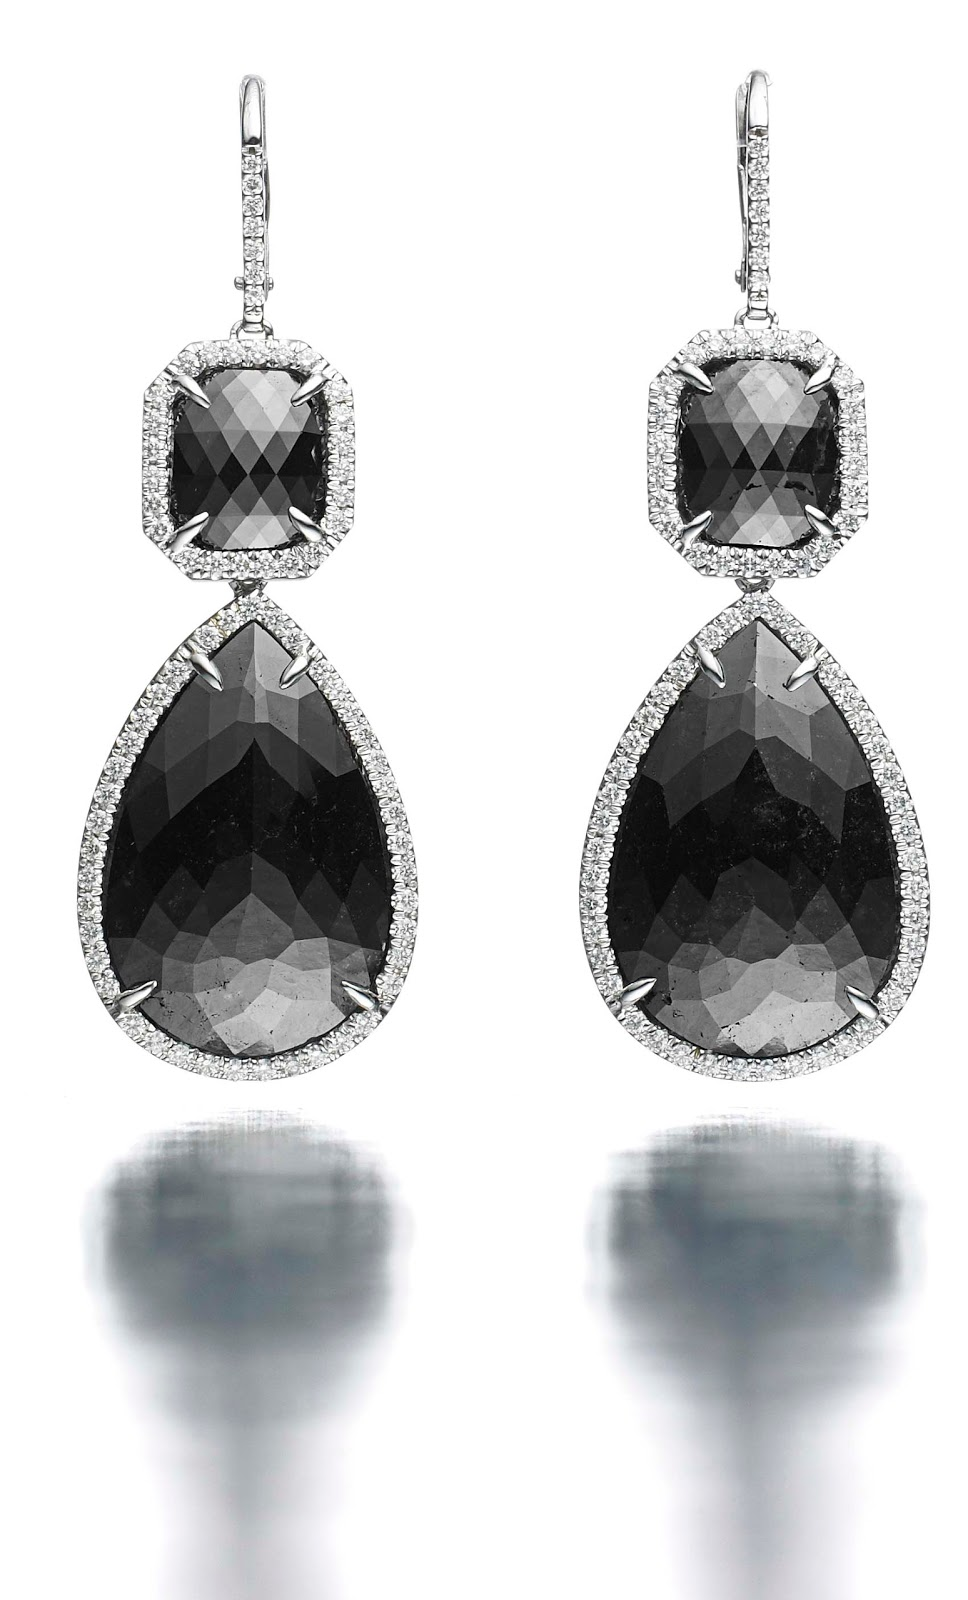 SHE FASHION CLUB: Black Diamond Earrings